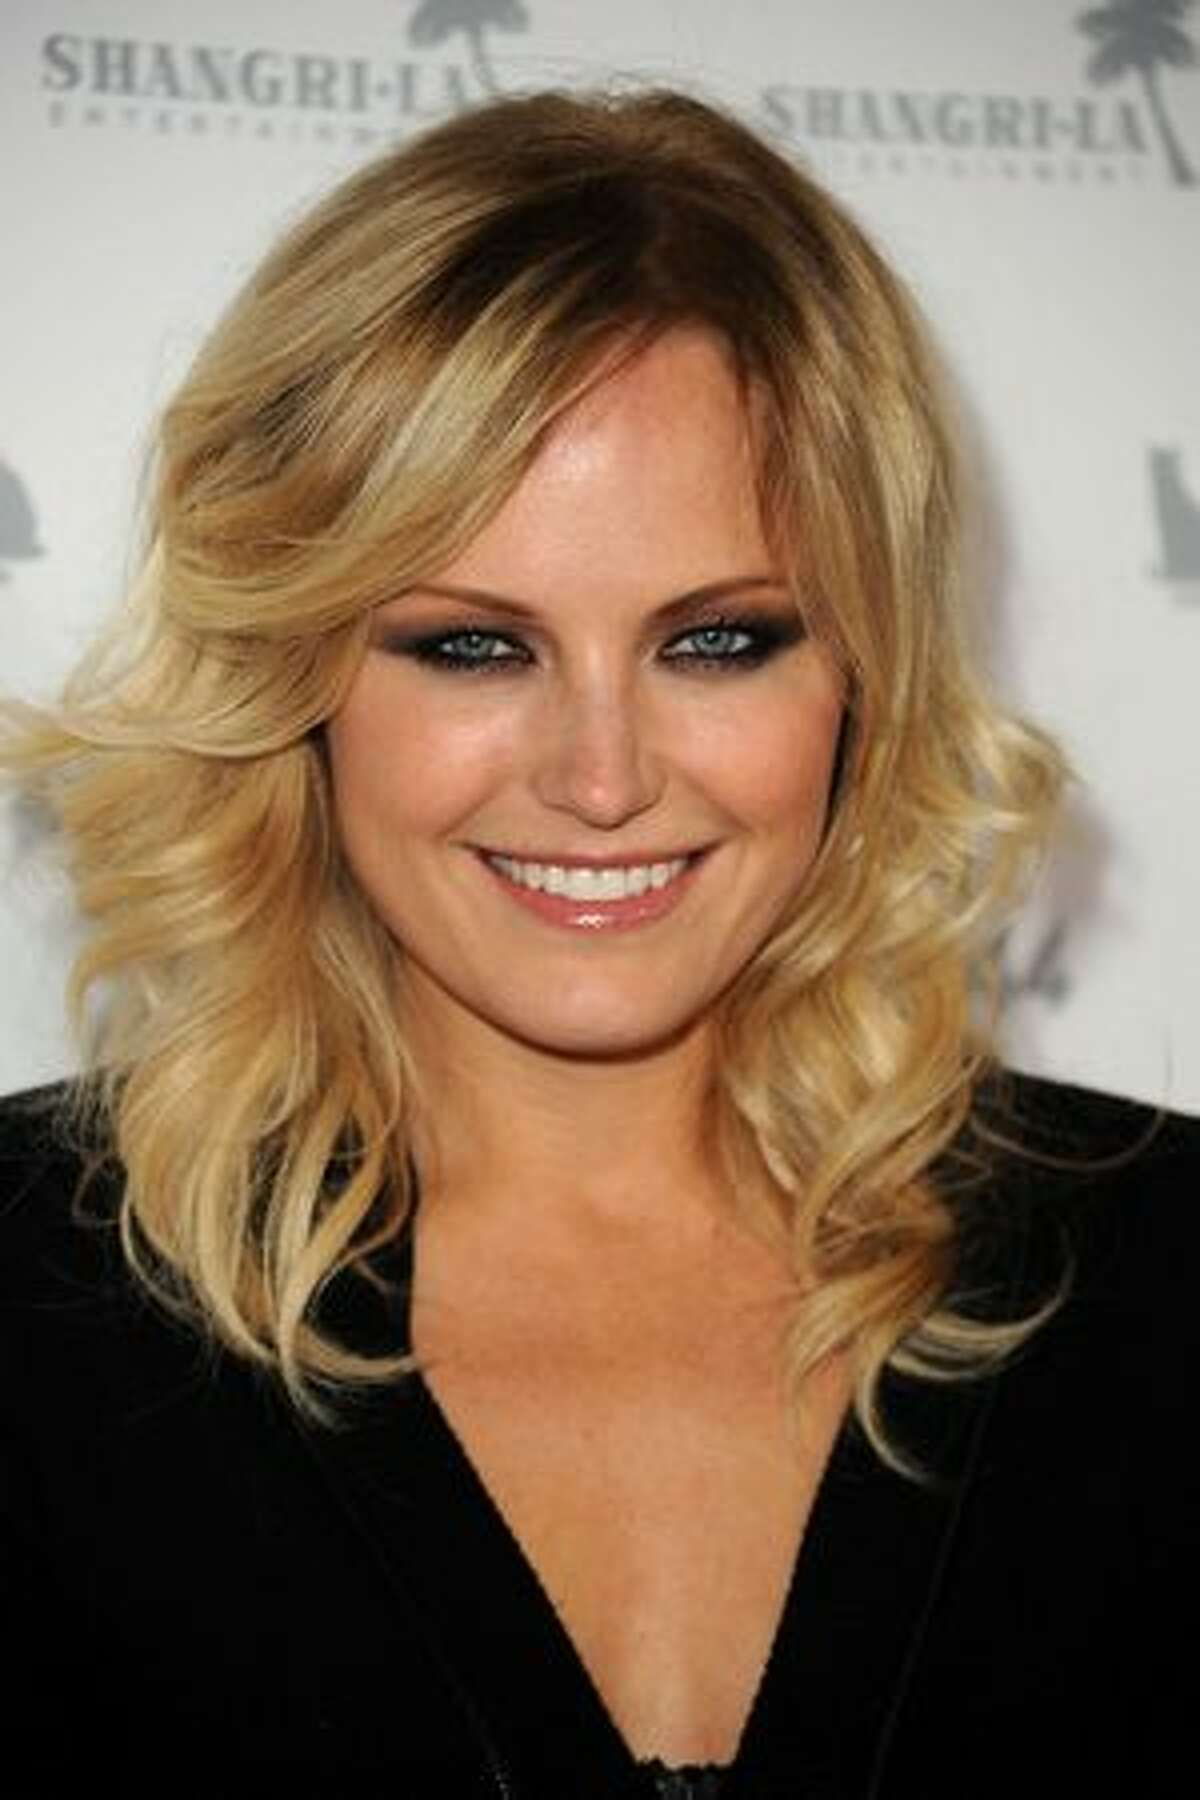 Actress Malin Akerman arrives at the premiere of Shangri-La Entertainment's